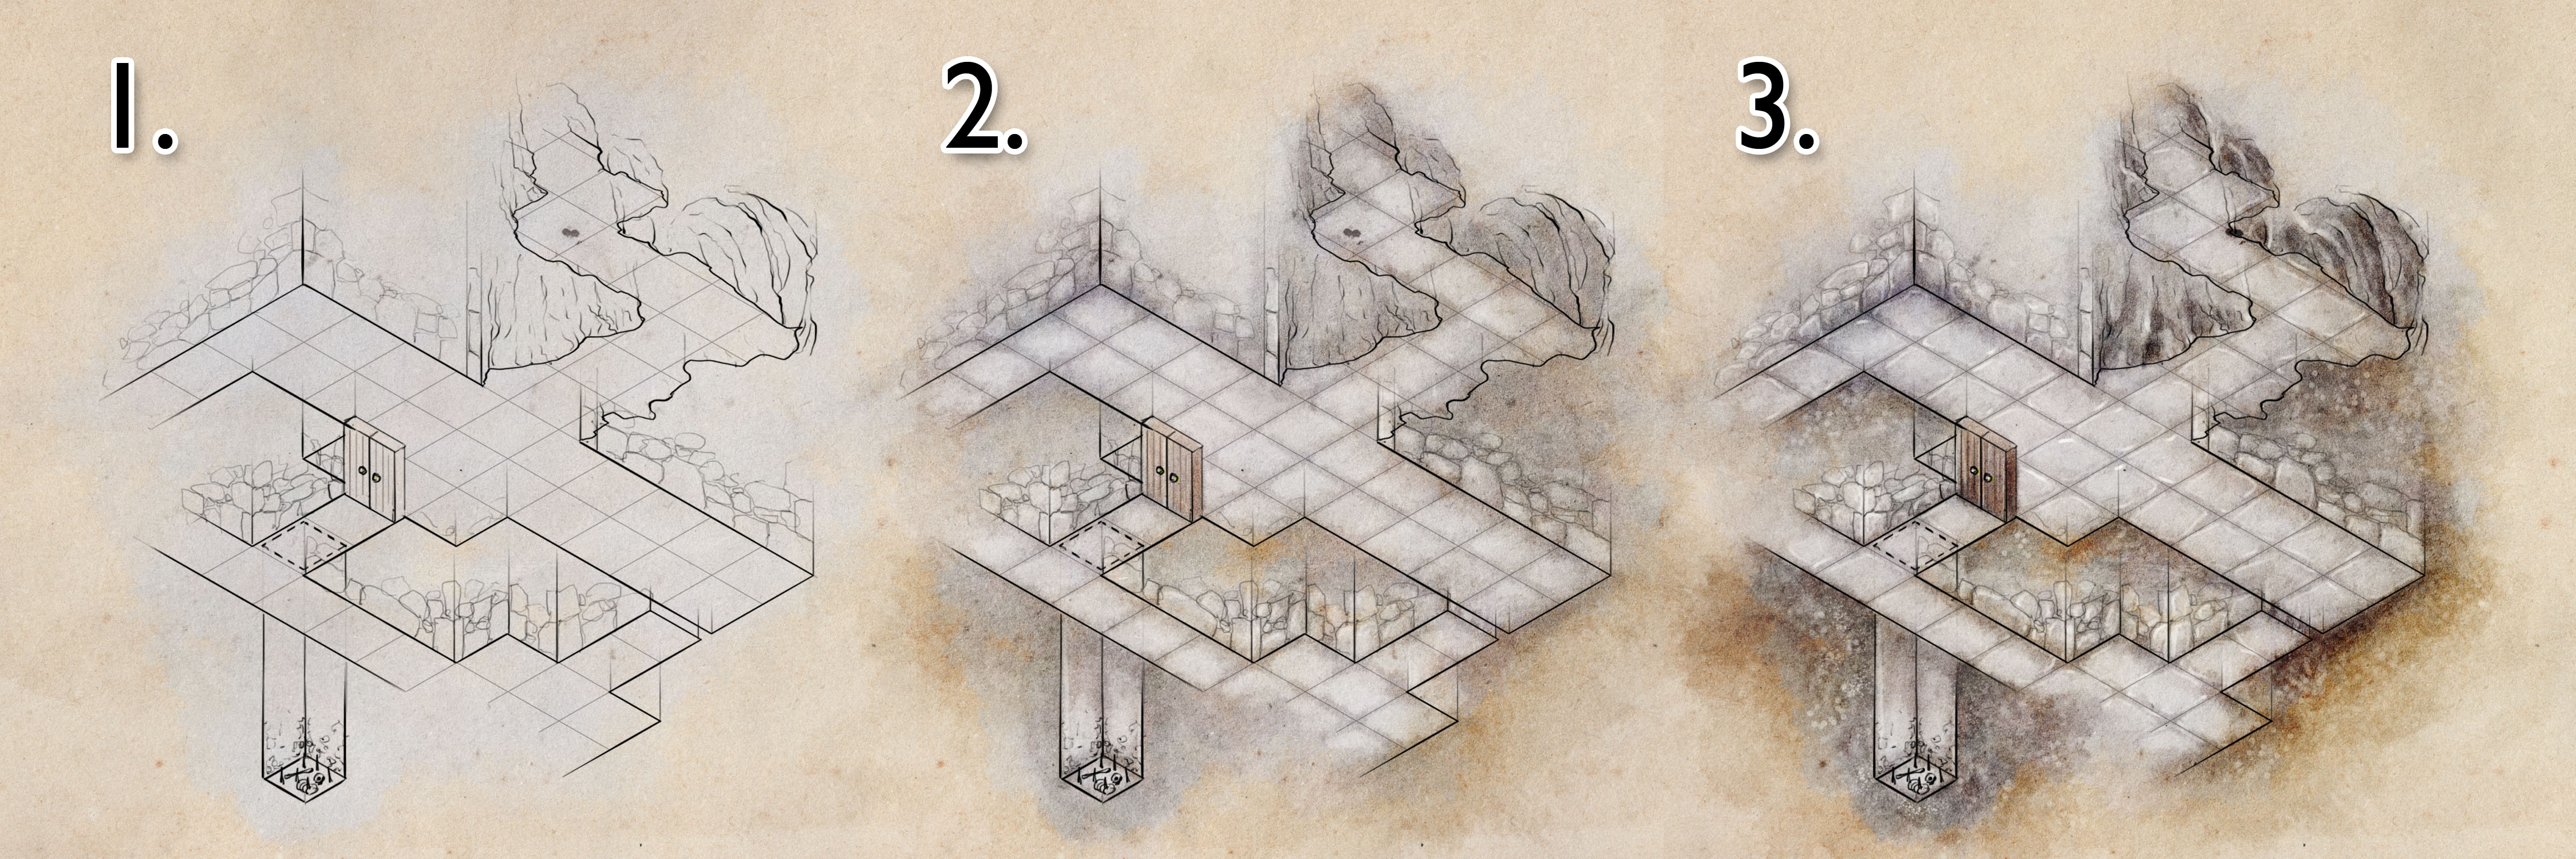 A short tutorial on how to draw an isometric dungeon map for d&d